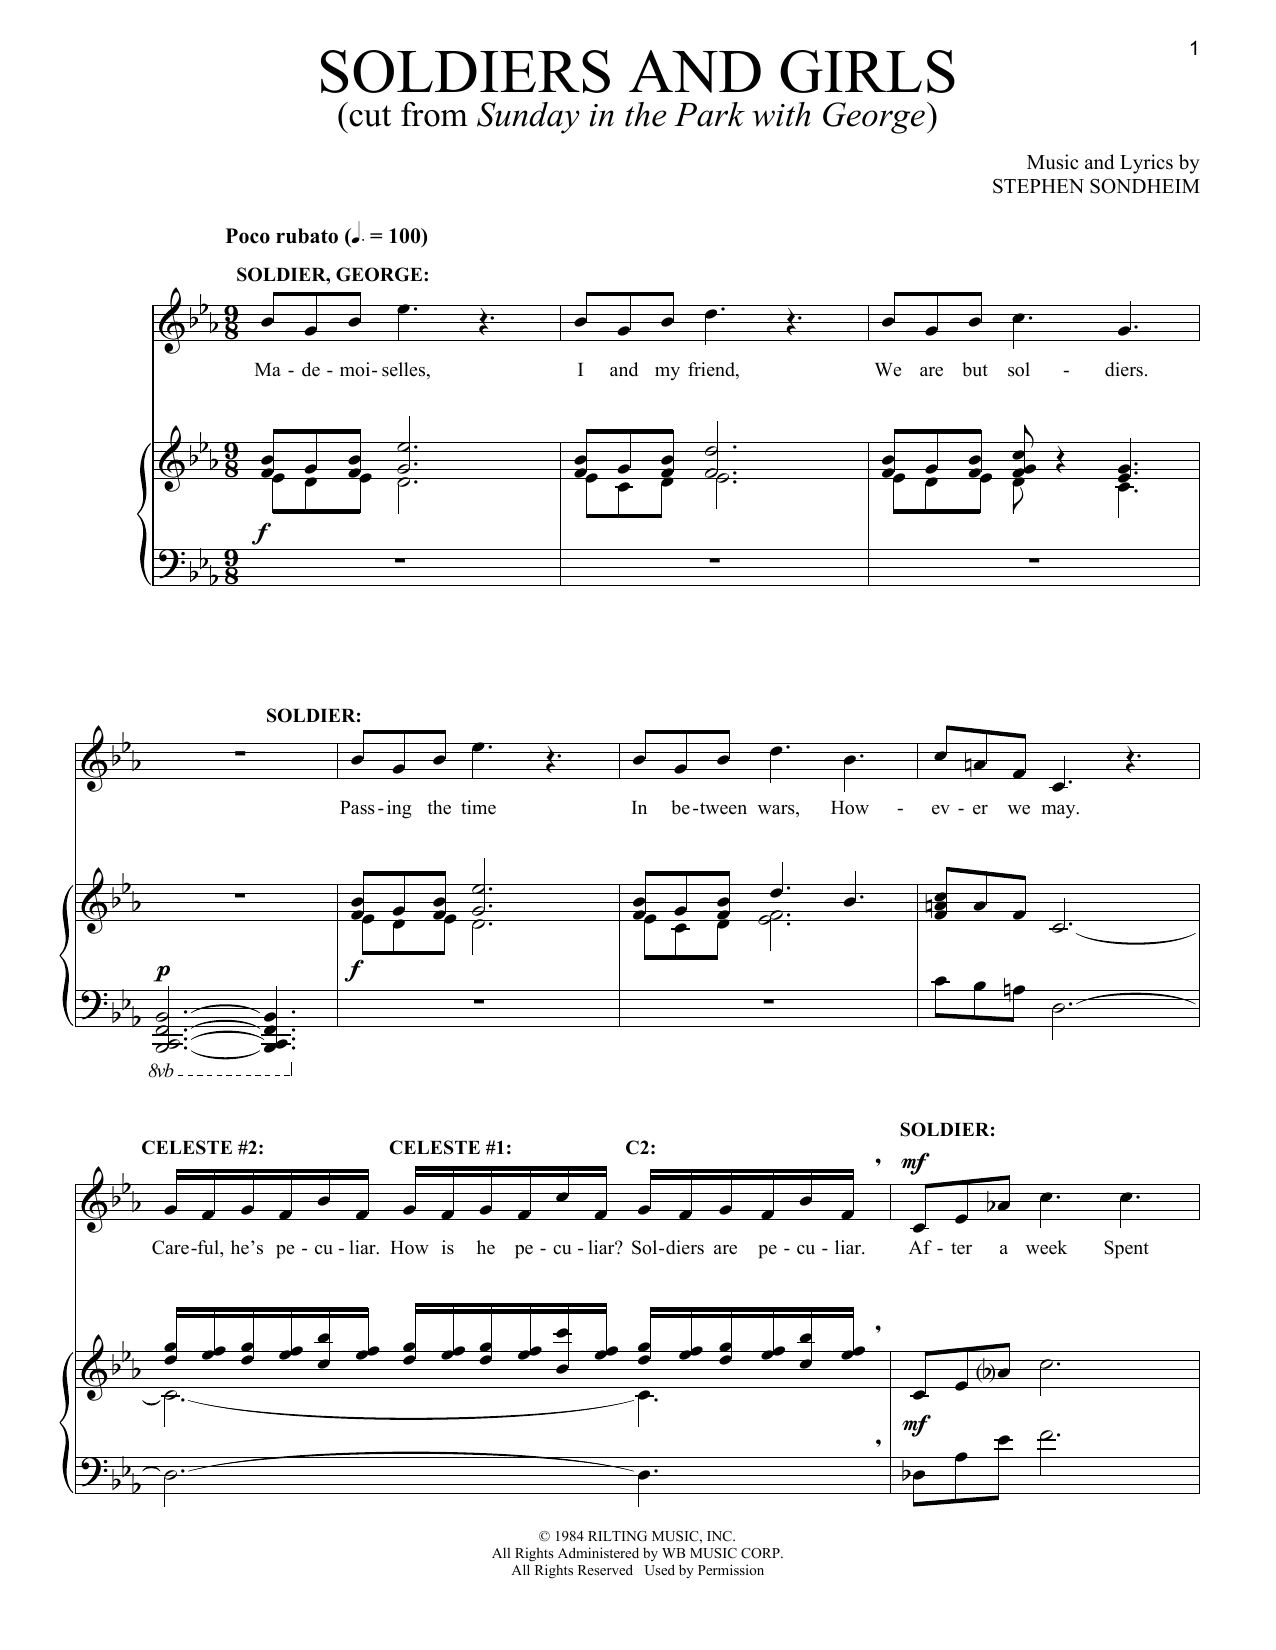 Stephen Sondheim Soldiers And Girls sheet music notes and chords